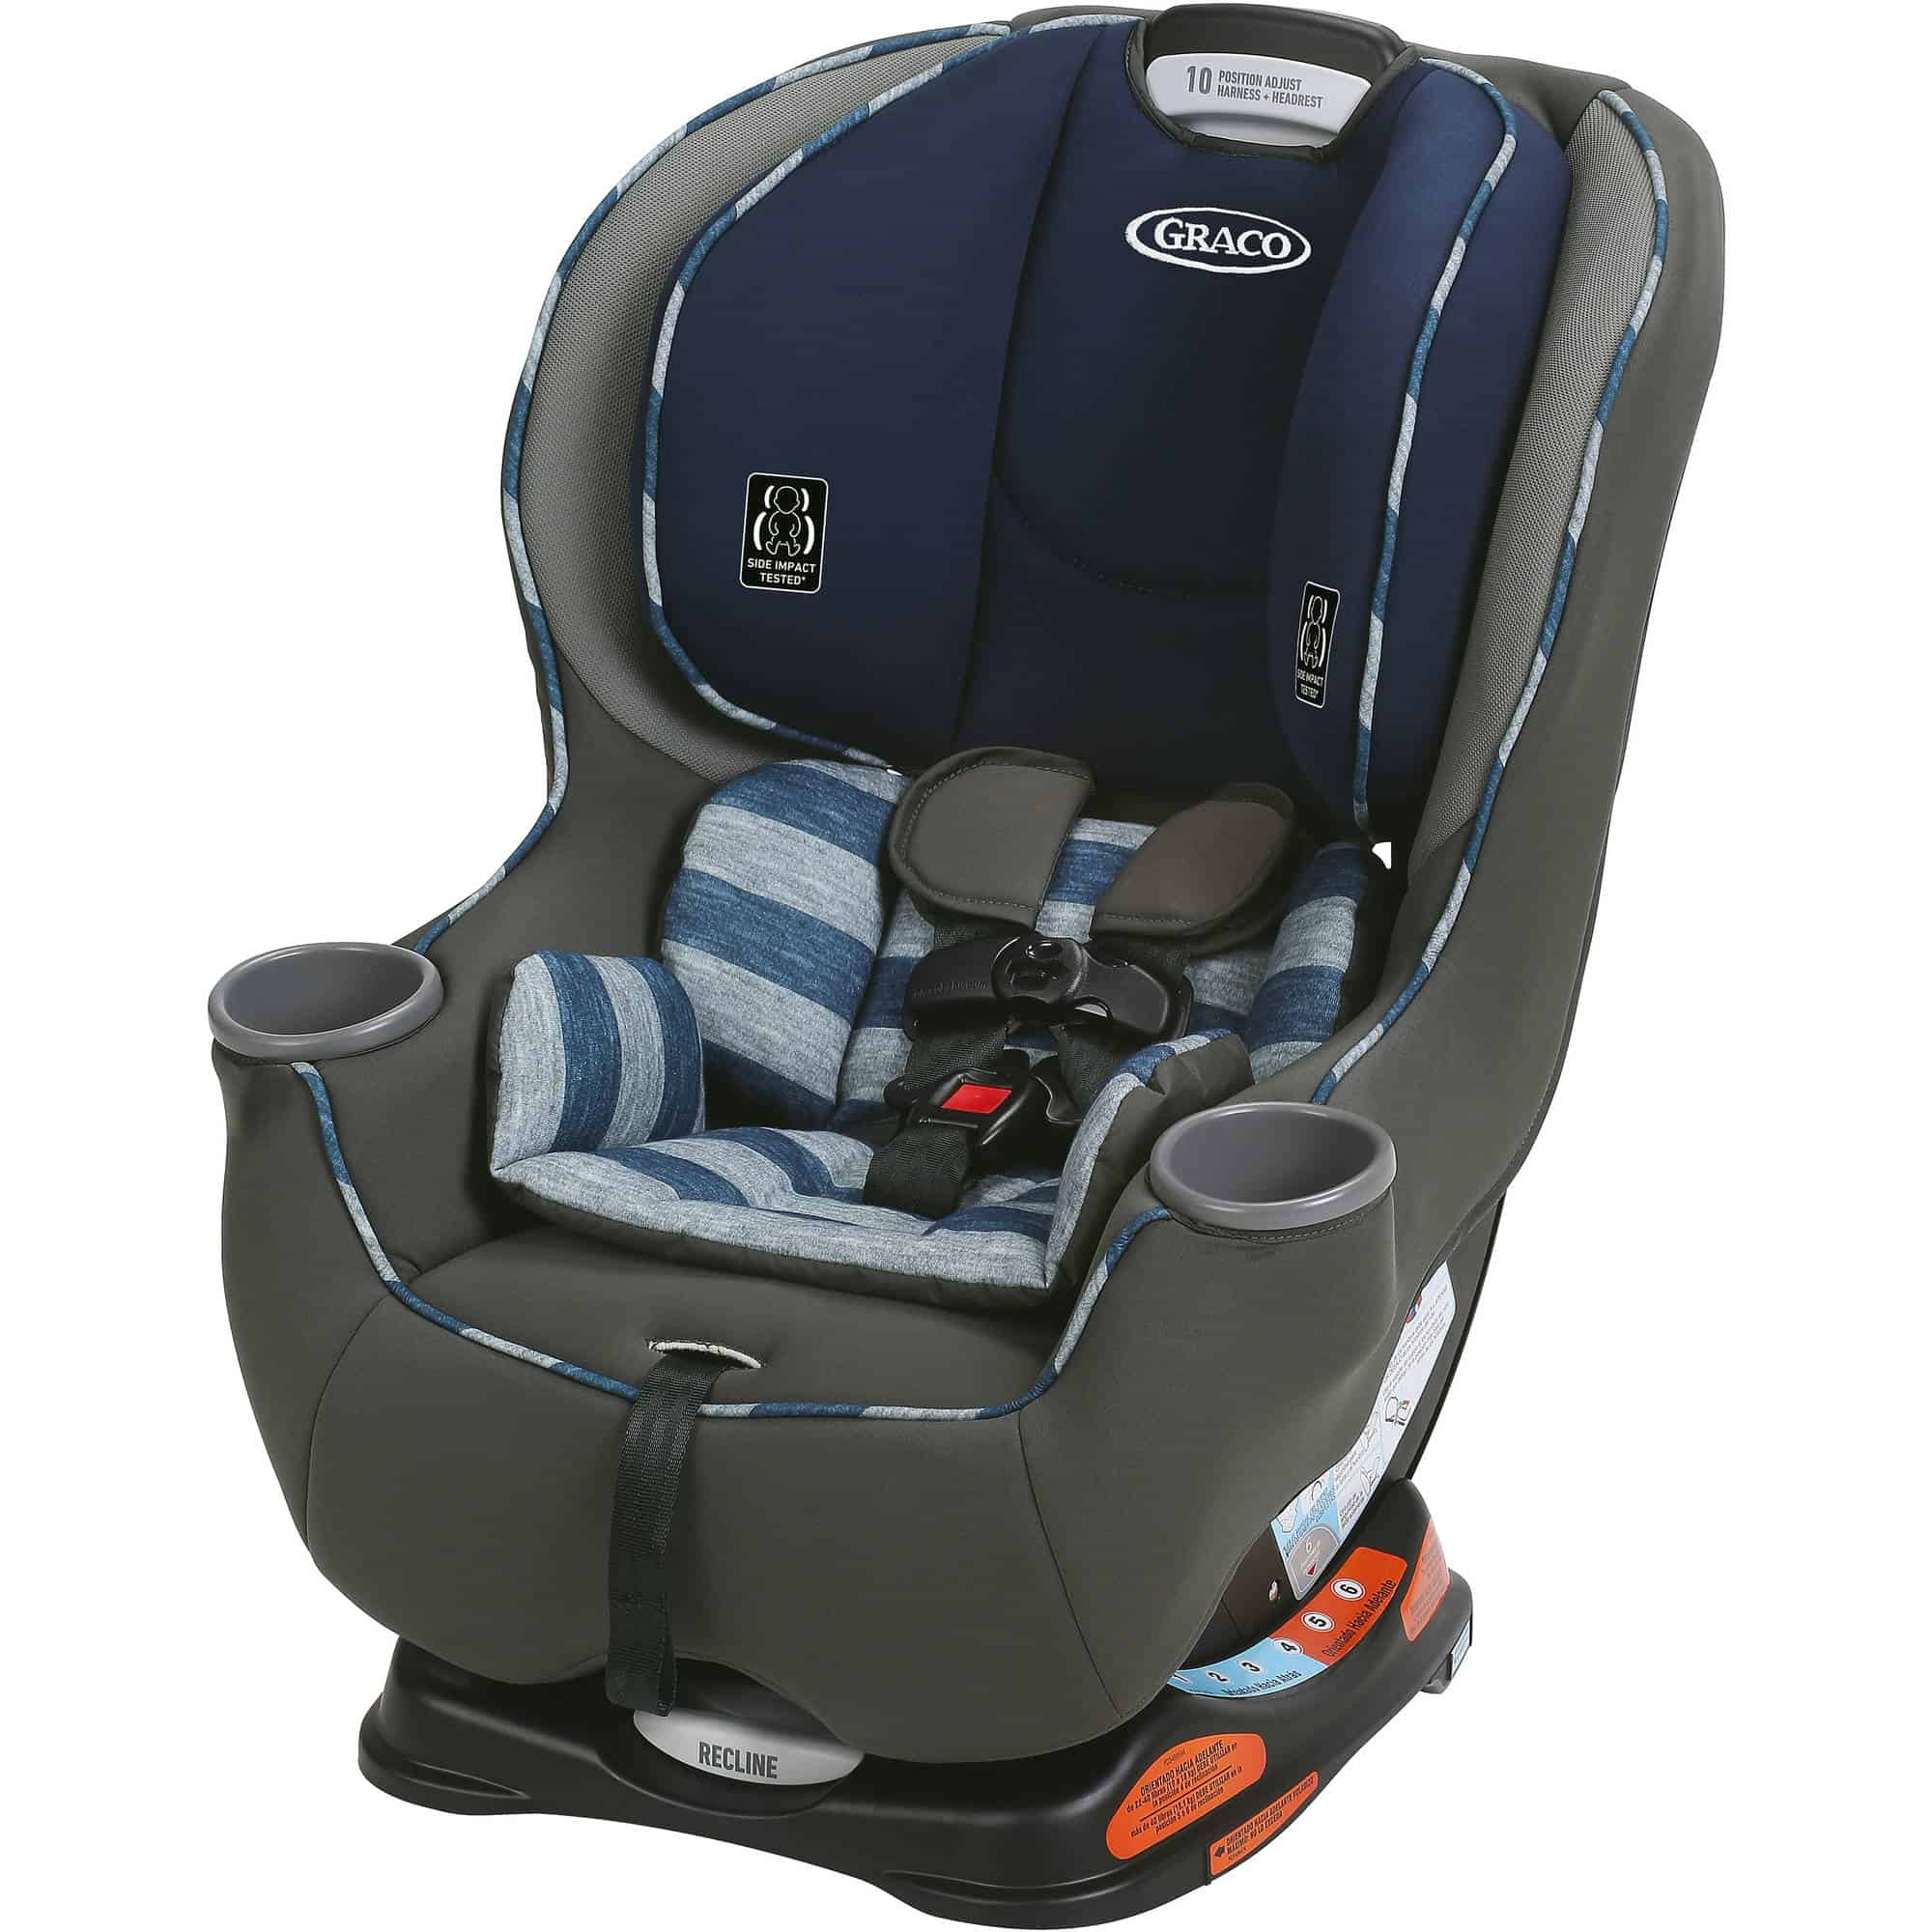 Convertible Car Seat Graco Sequel Baby Bargains